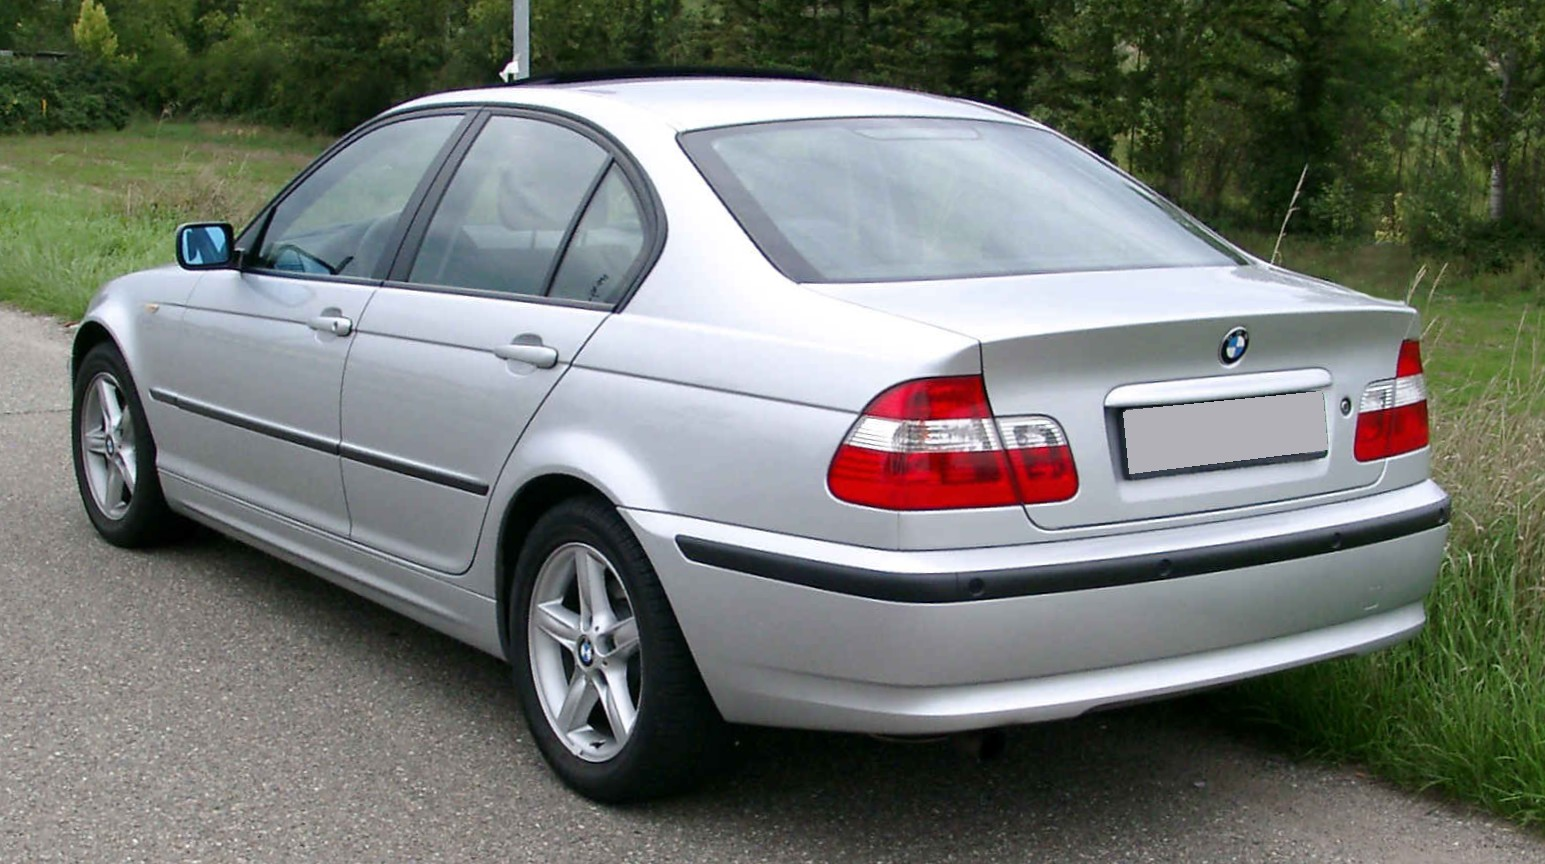 2002 E46 saloon Facelift